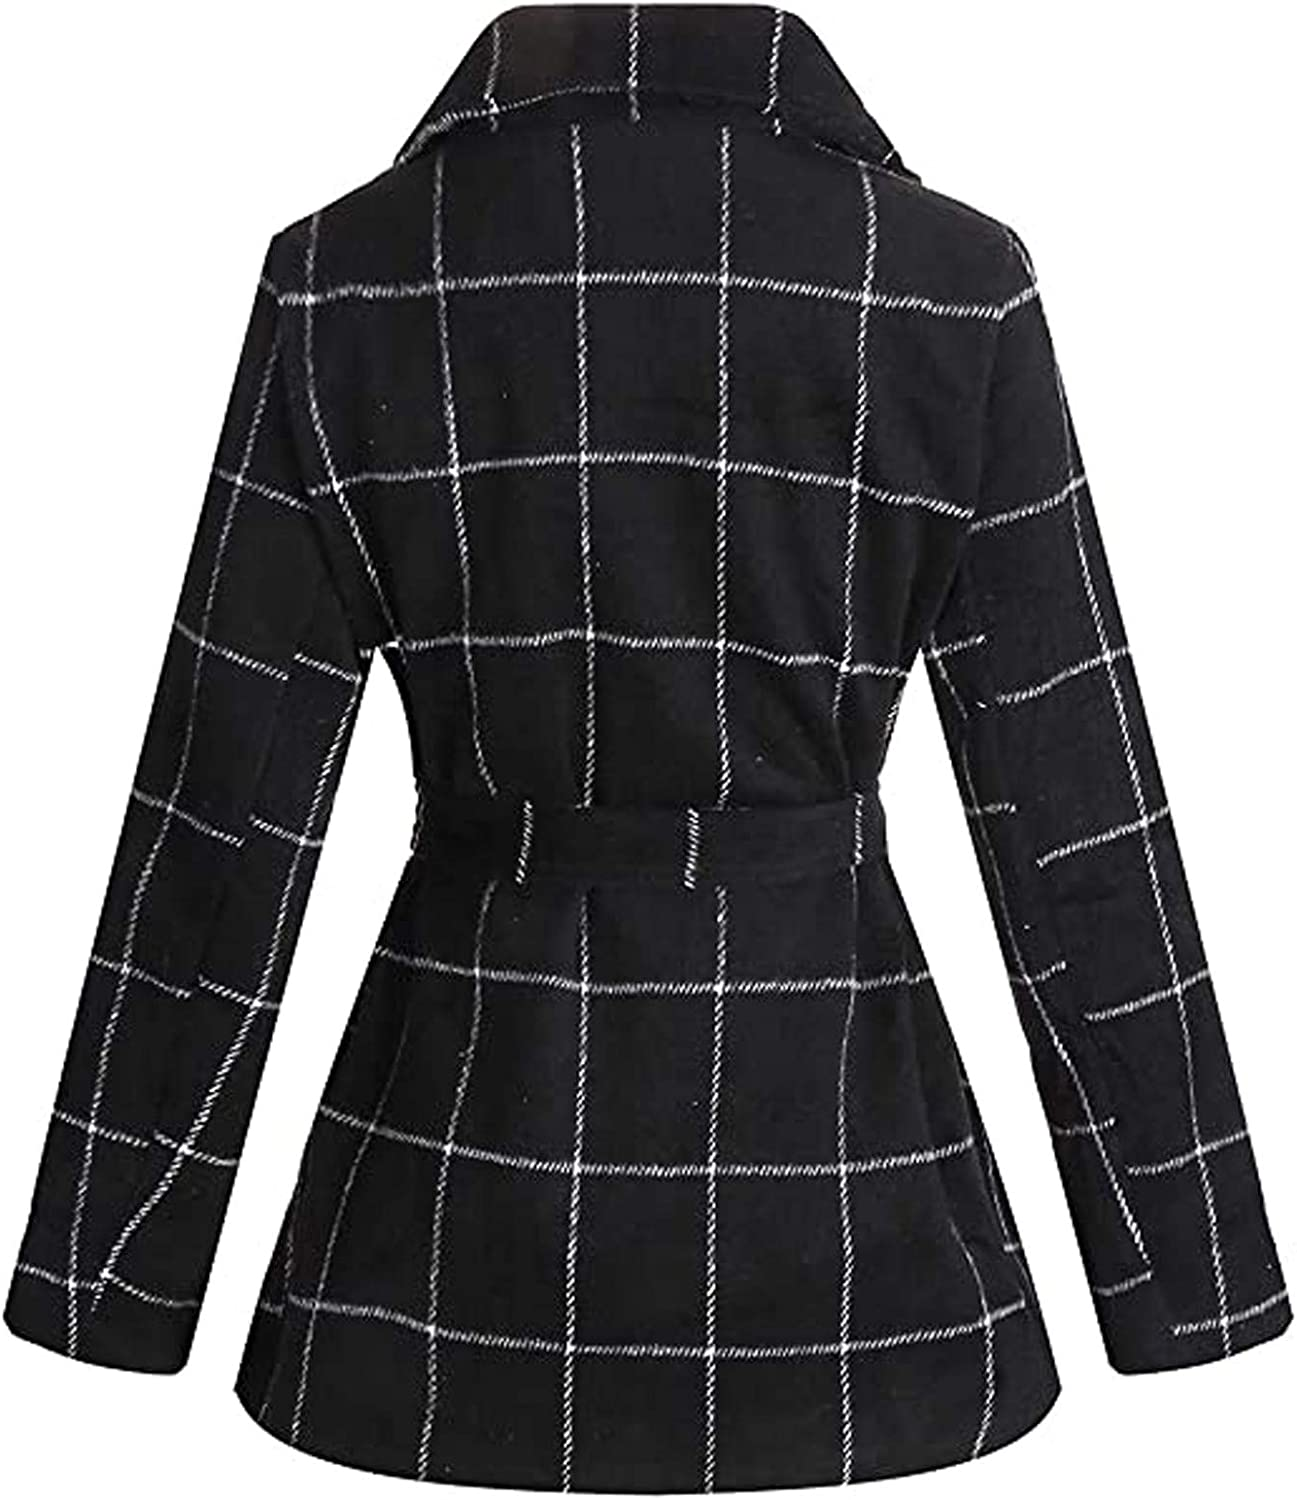 Coats for Women, Women's Winter Long Double Breasted Wool Trench Coat Thick Pea Coat